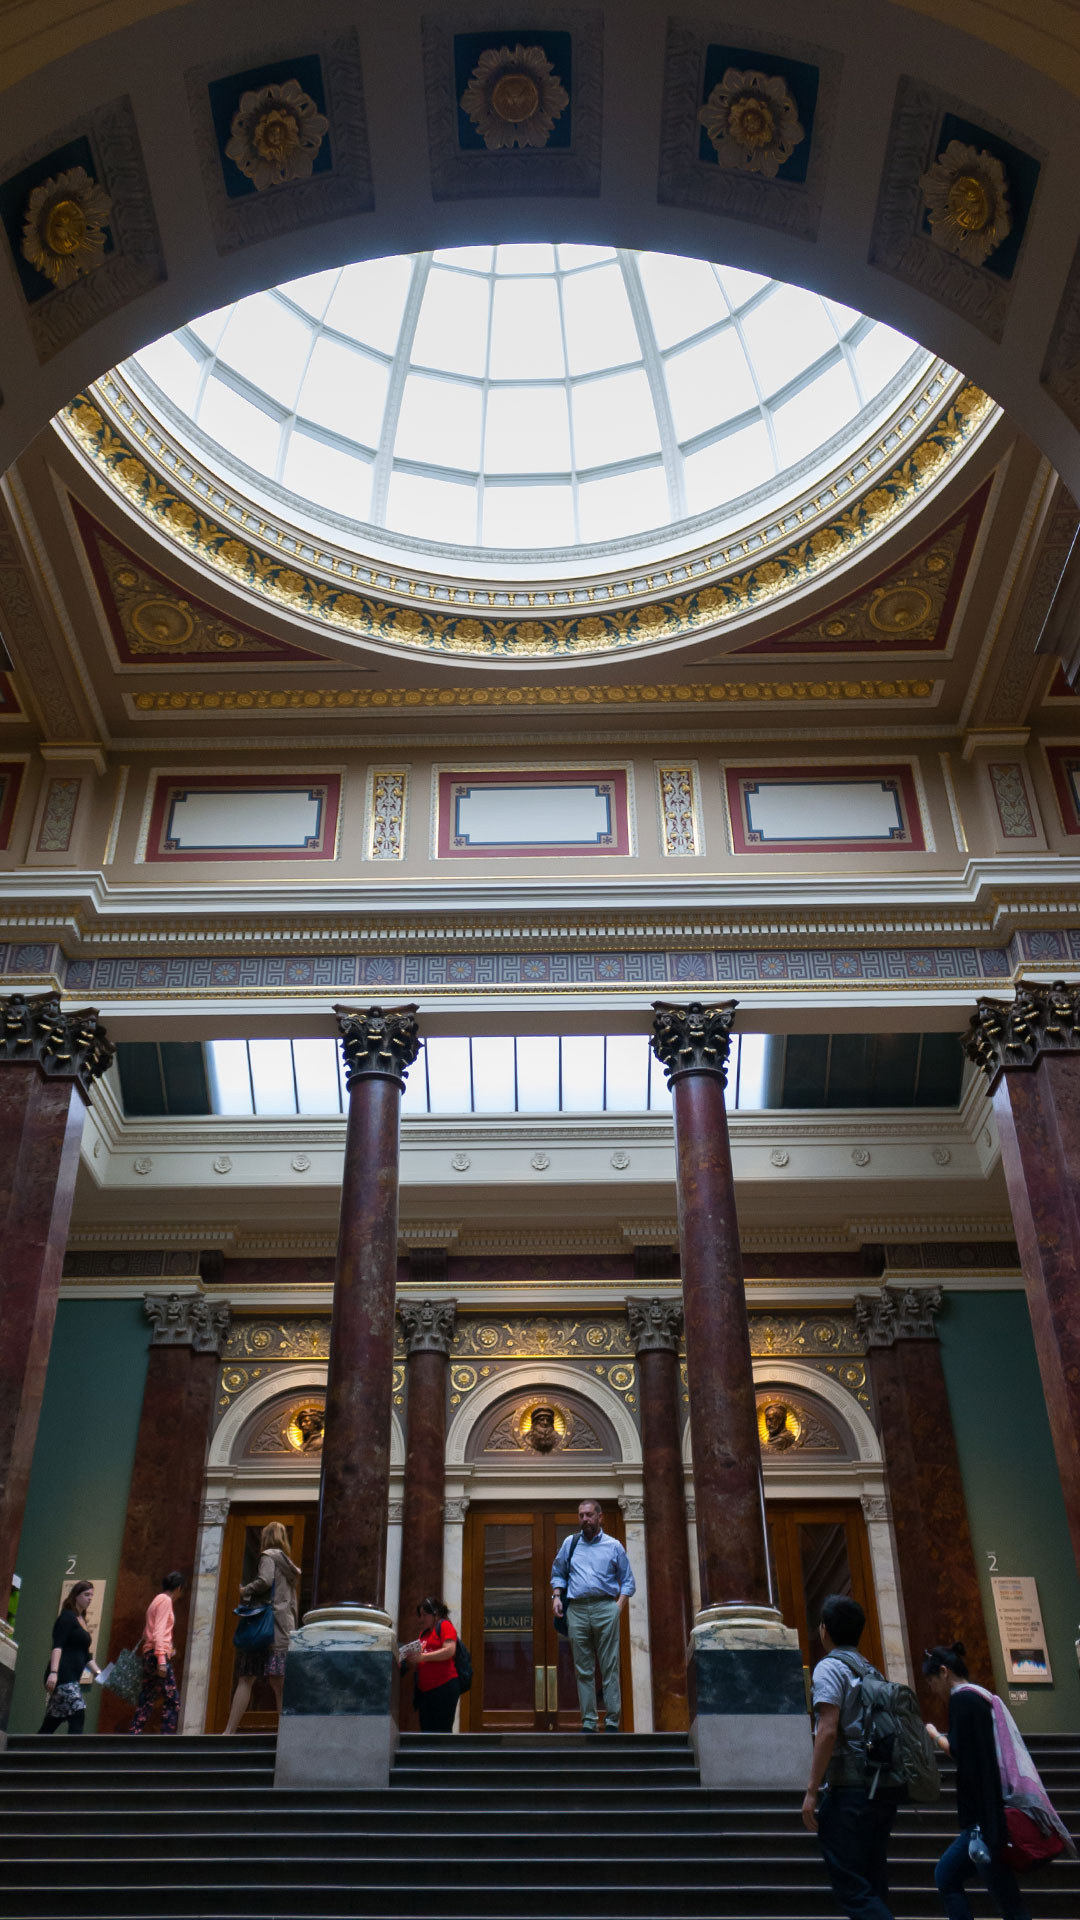 Inside the National Gallery in London